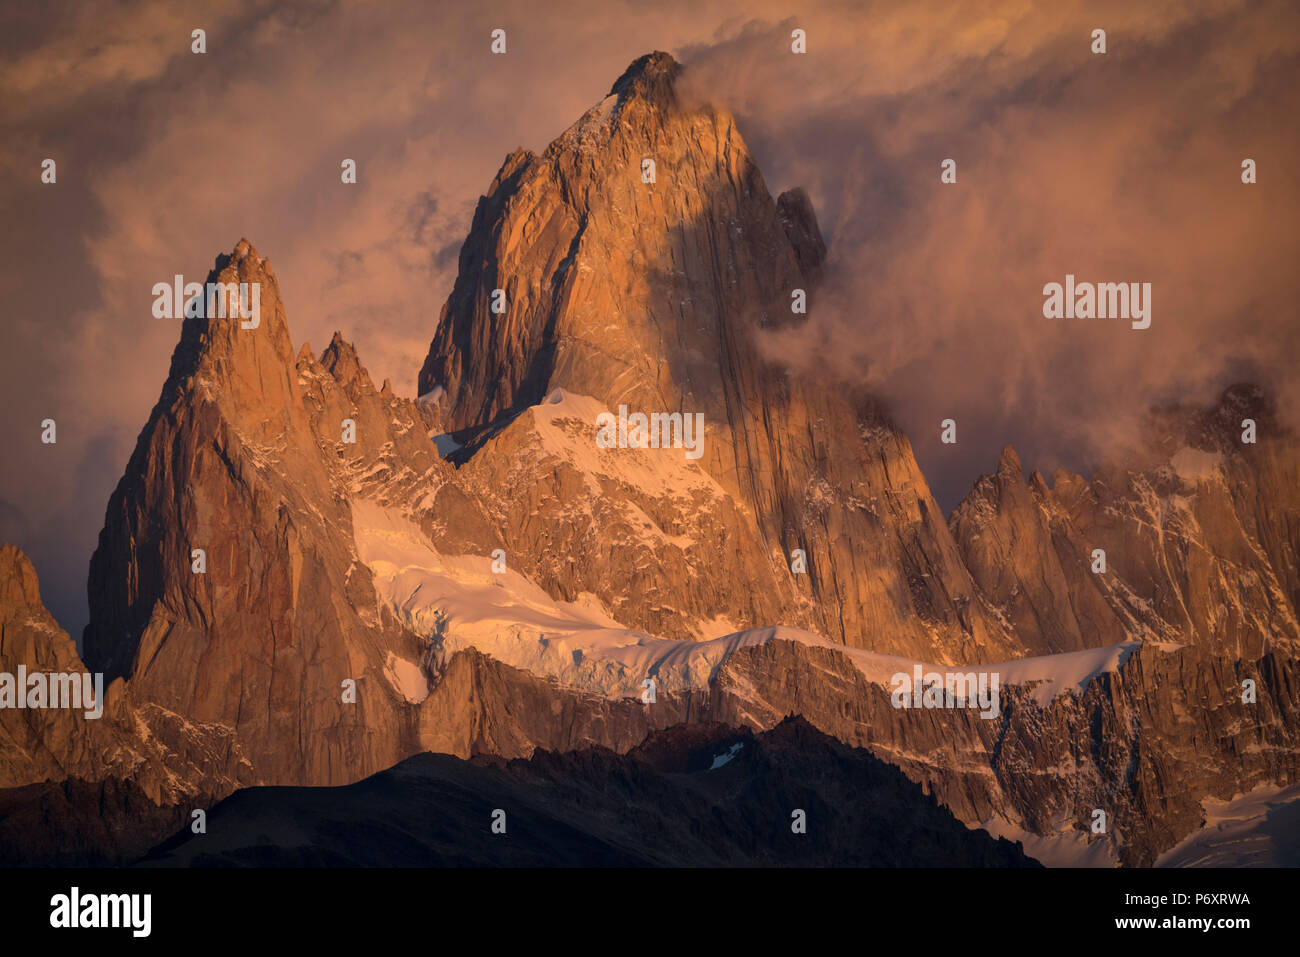 South America, Patagonia, Argentina, El Chalten, Mount Fitz Roy in Los Glaciares National Park - Stock Image